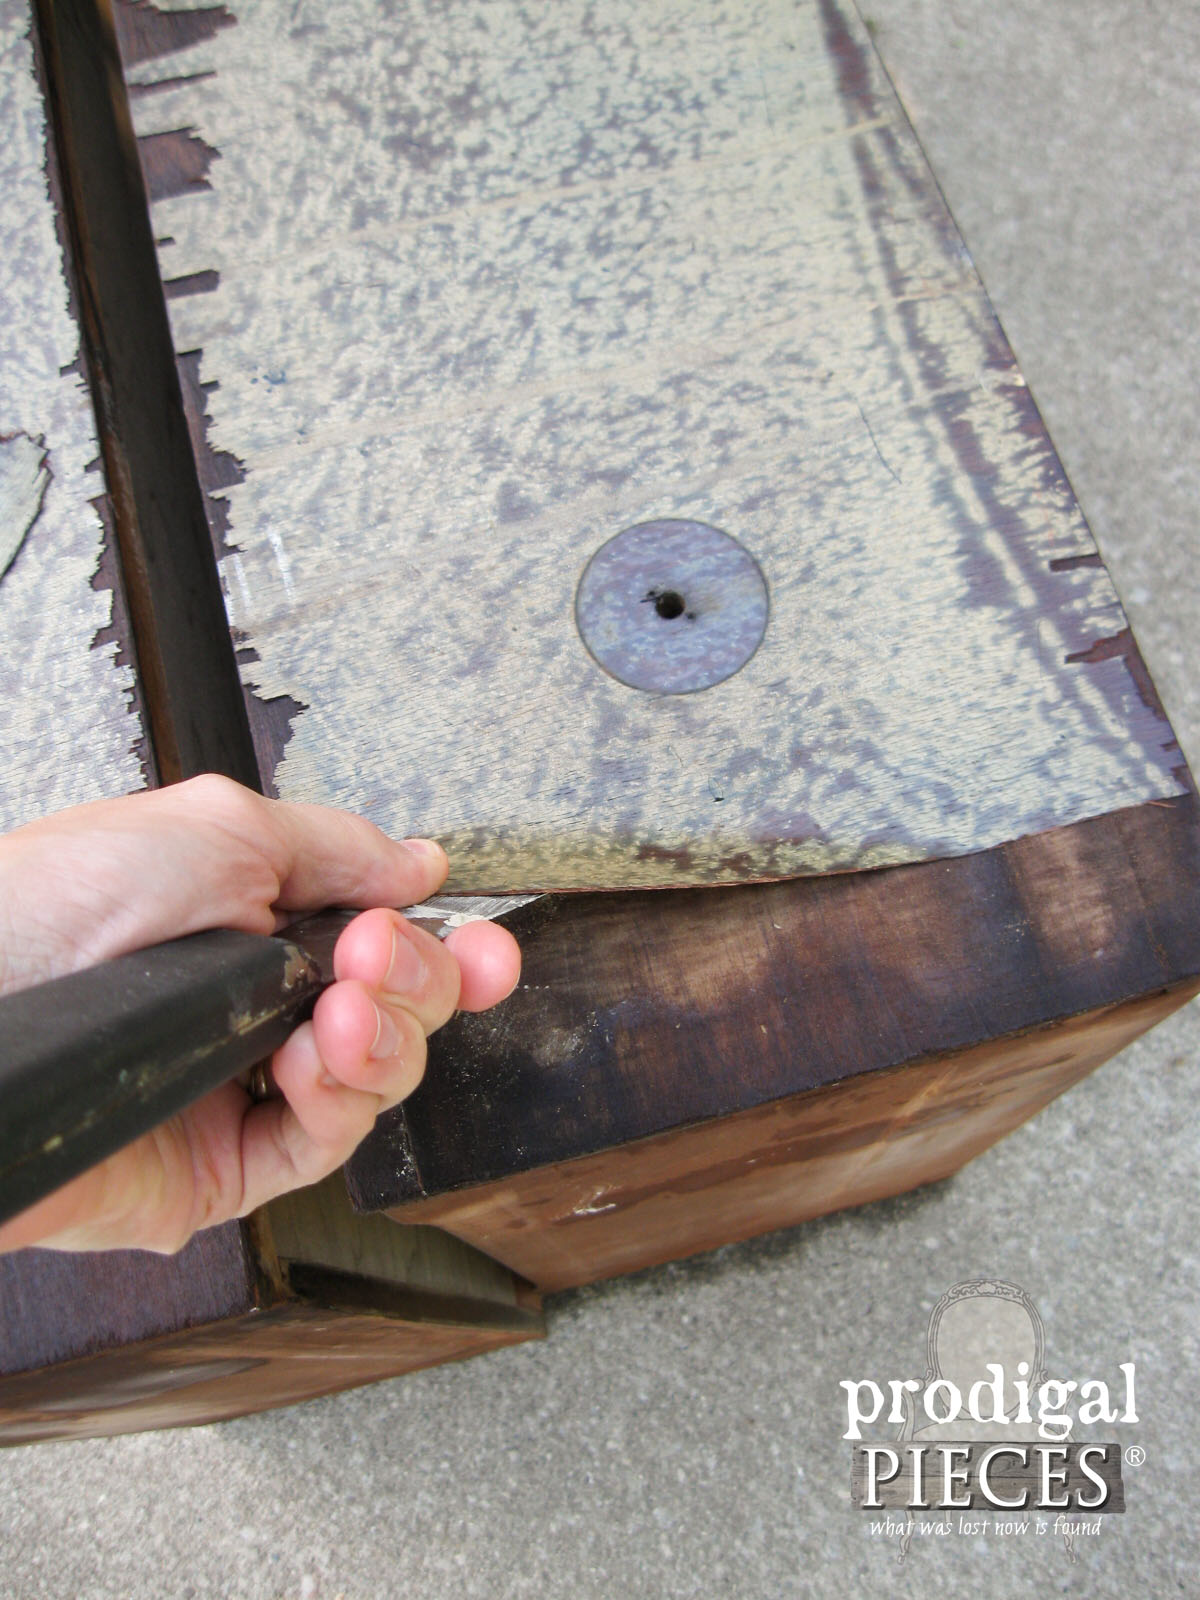 Removing Damaged Veneer with Towel Soak Method by Prodigal Pieces | www.prodigalpieces.com